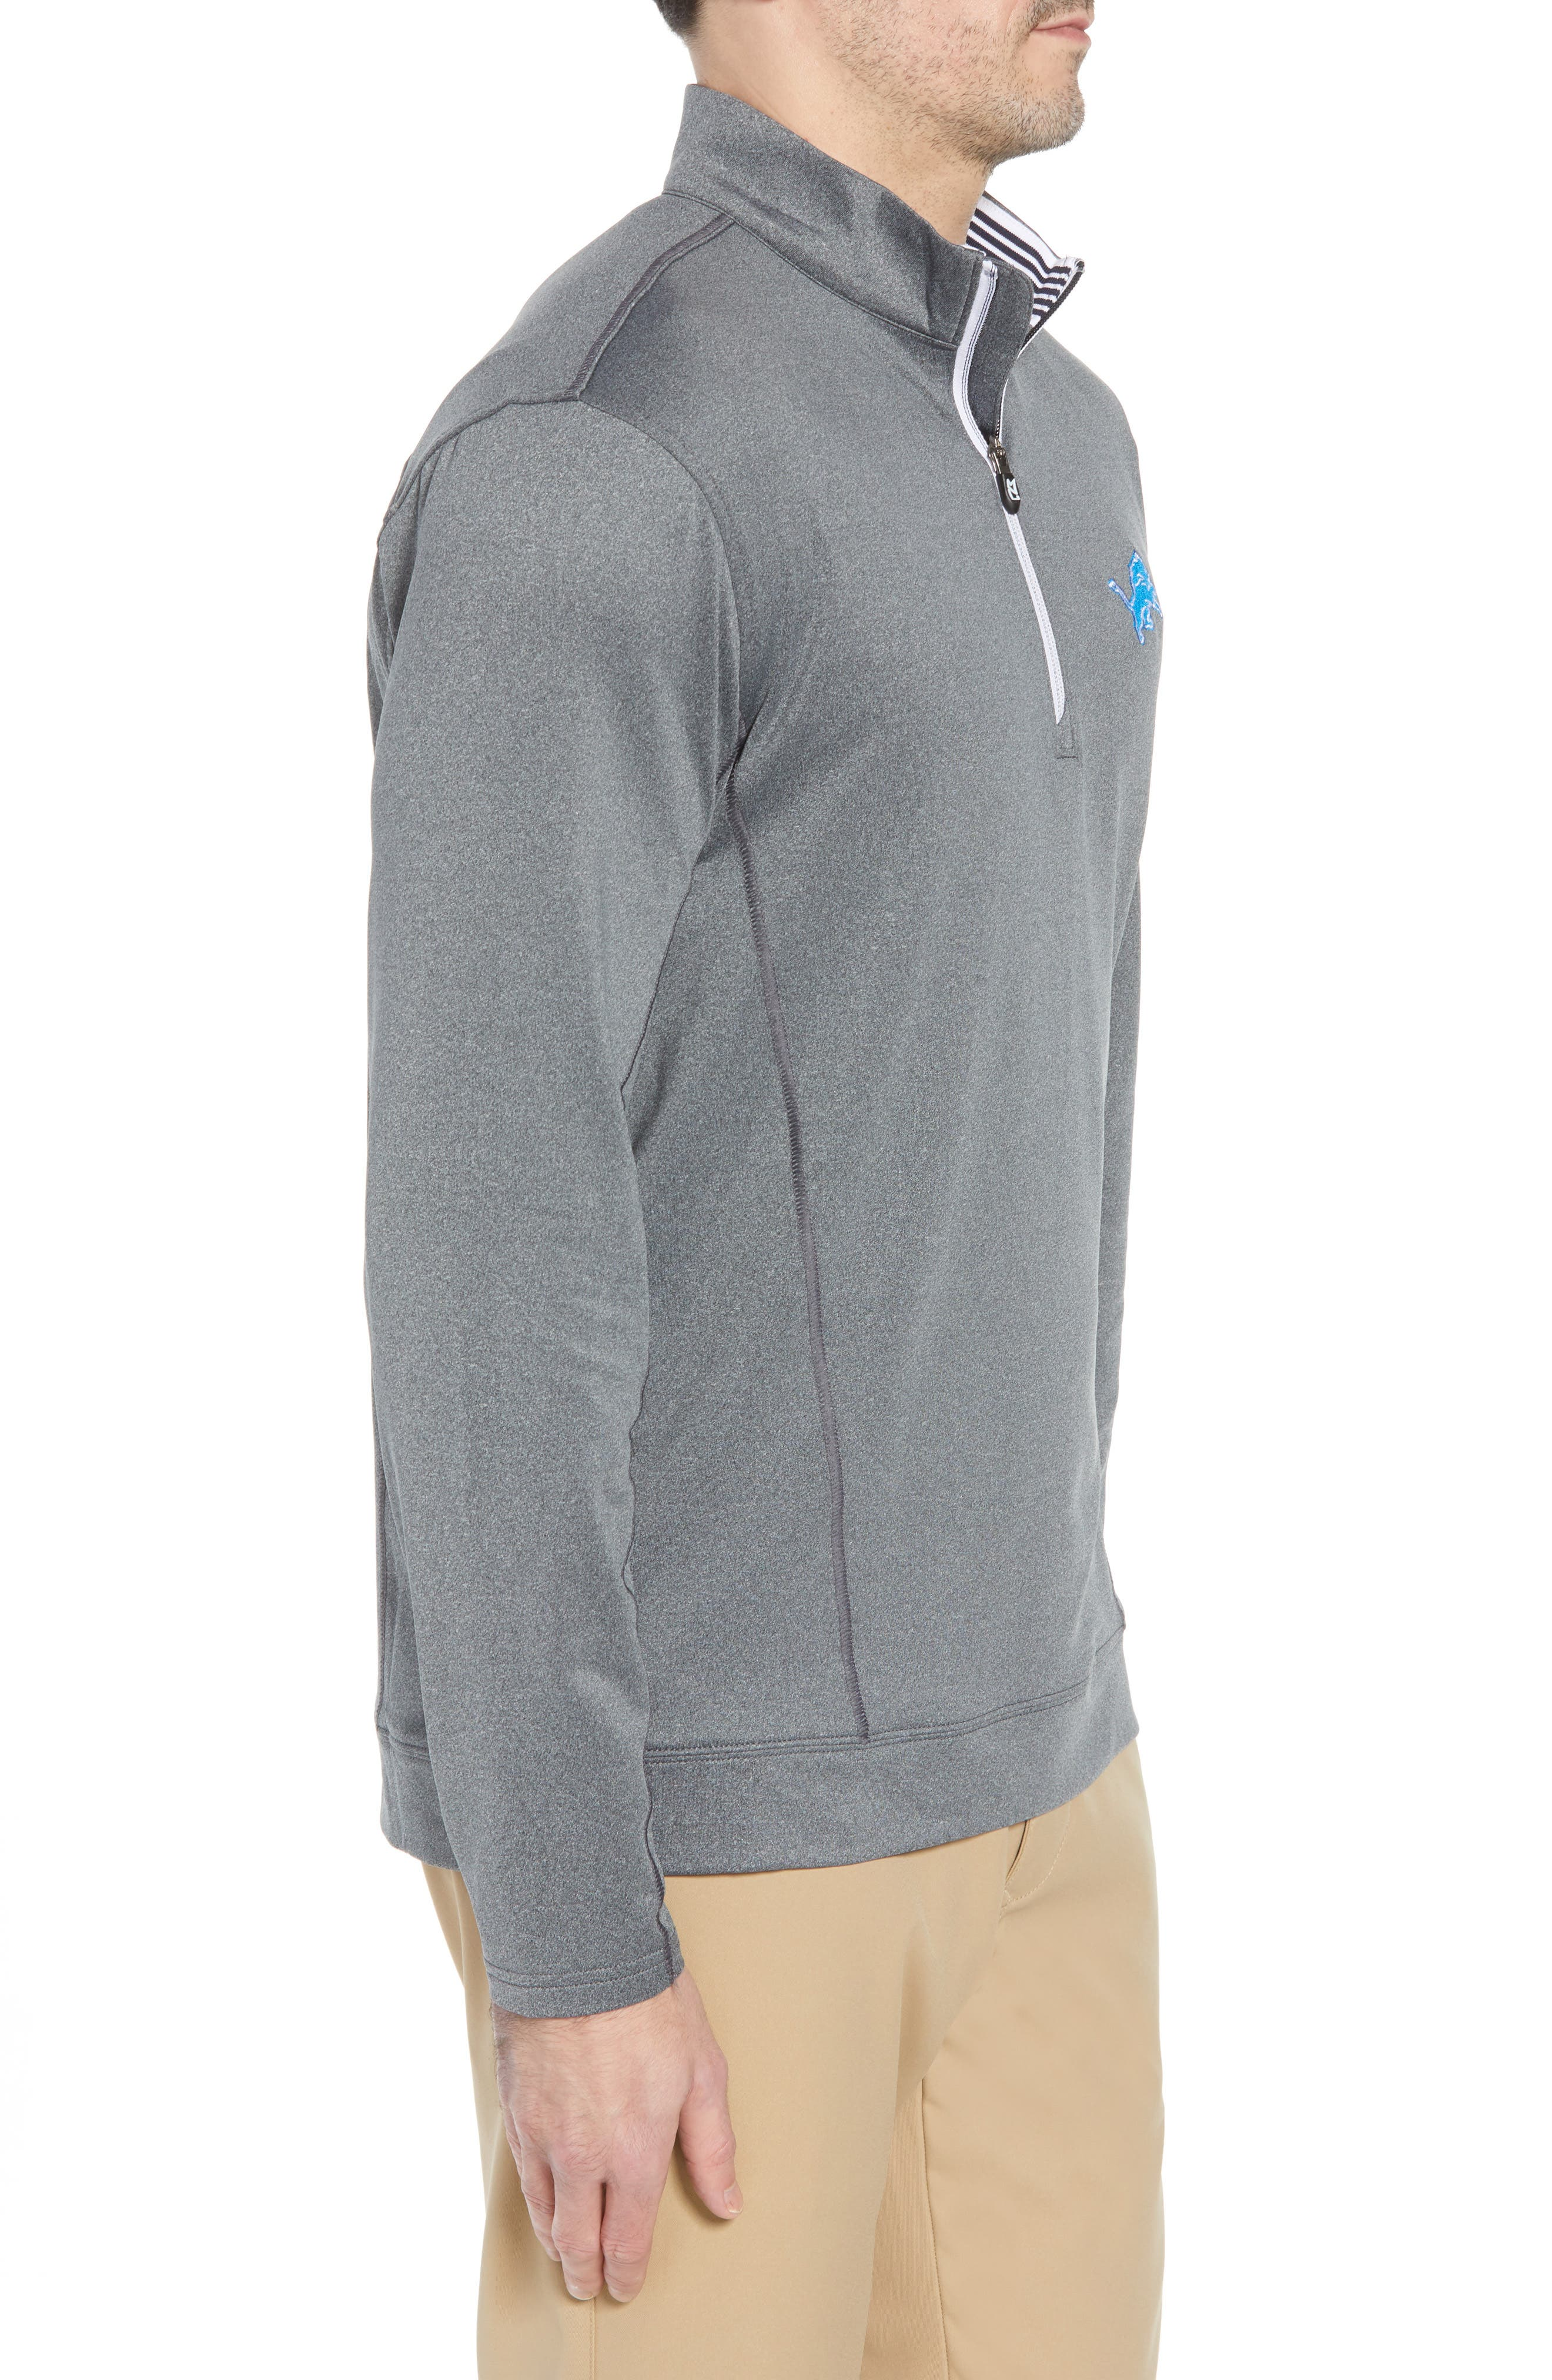 Endurance Detroit Lions Regular Fit Pullover,                             Alternate thumbnail 3, color,                             CHARCOAL HEATHER